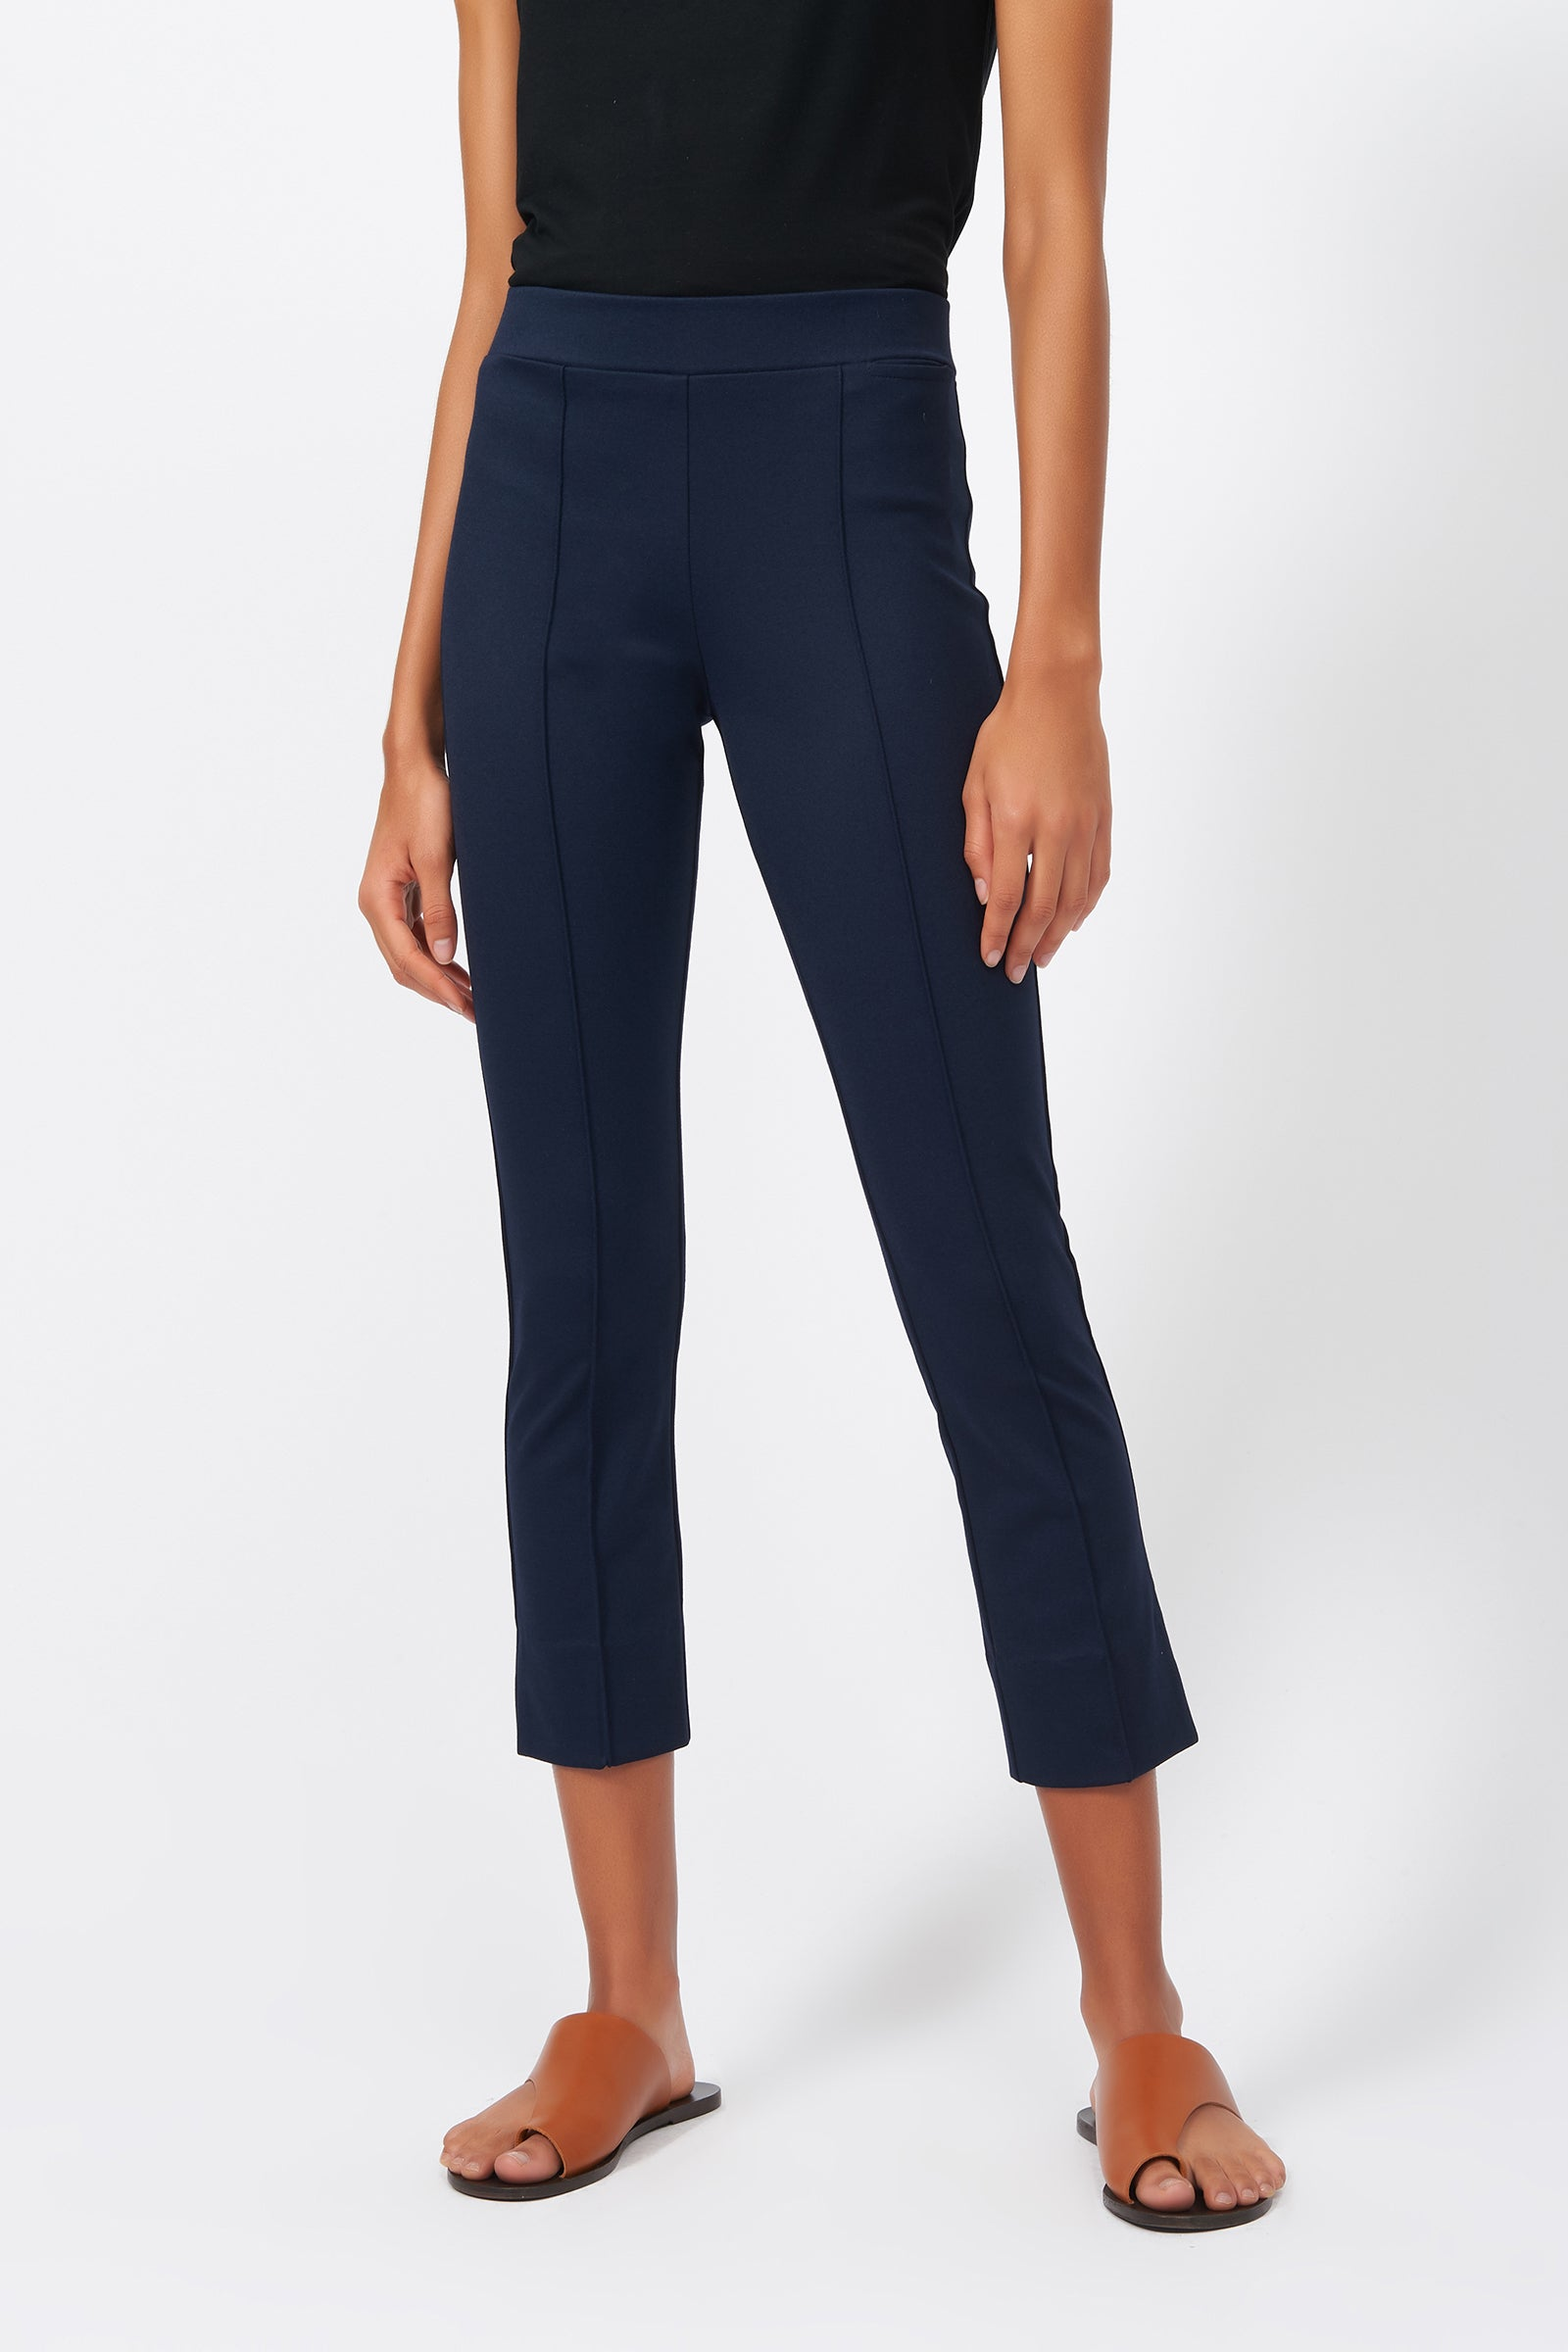 Kal Rieman Pintuck Slit Capri in Navy on Model Front View